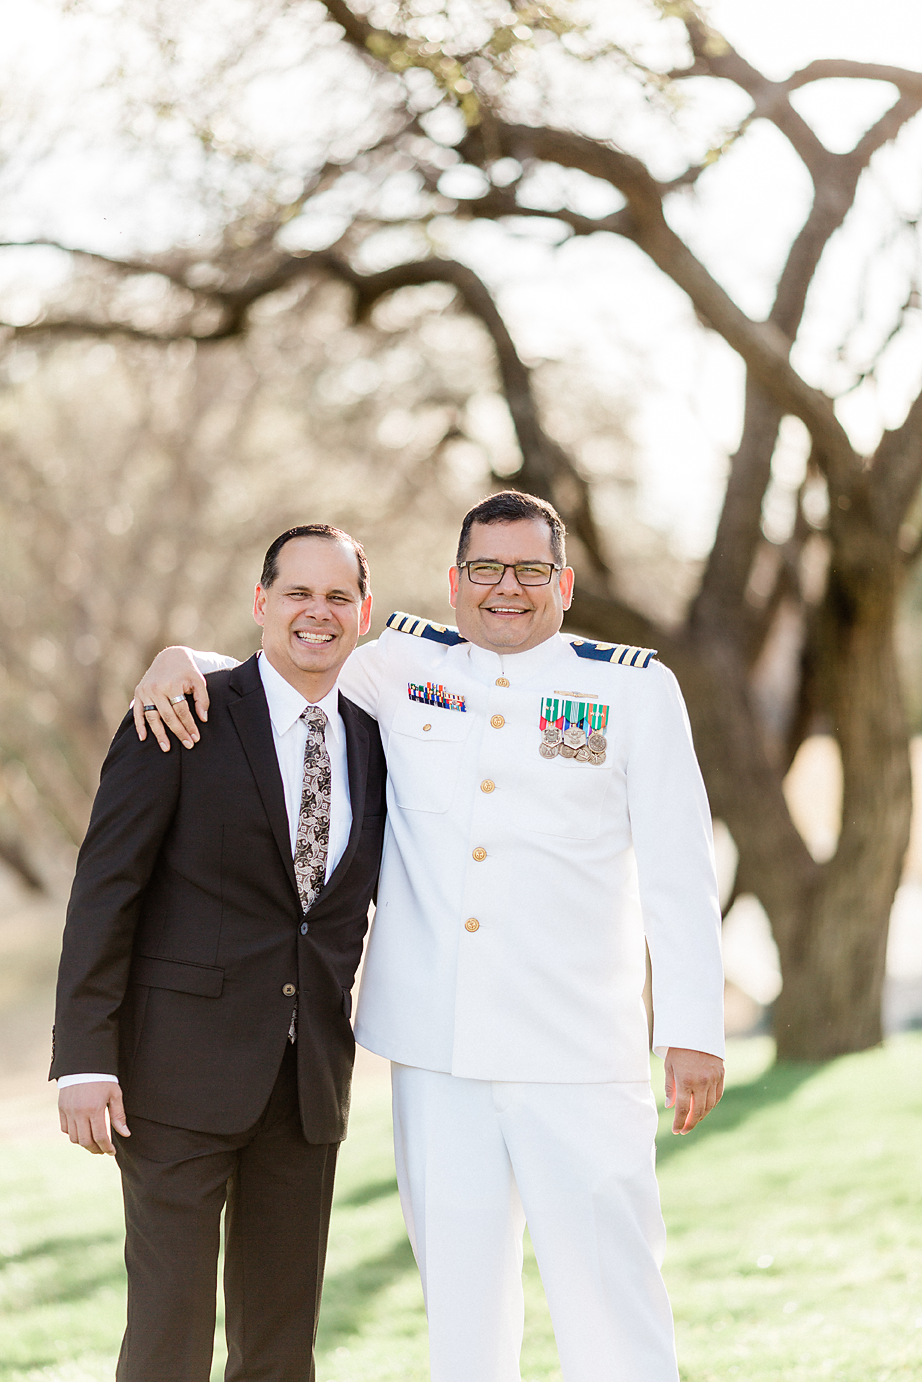 Dallas Wedding photographer Las Colinas Country Club groom and best man Kate Marie Portraiture.png